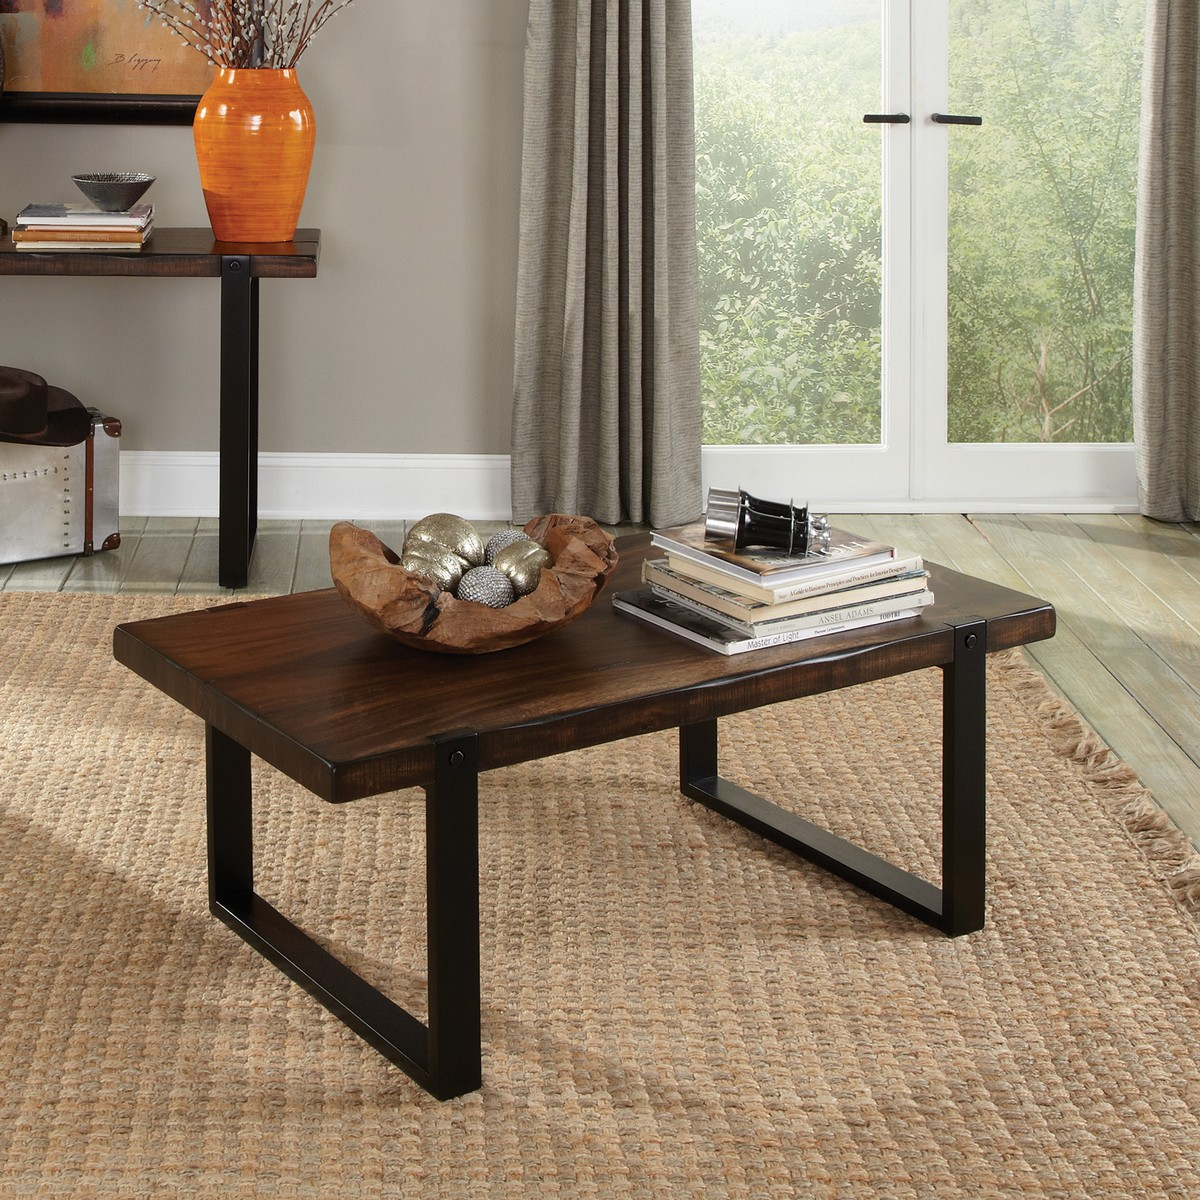 Coaster 703428 Coffee/Cocktail Table - Vintage Brown/black